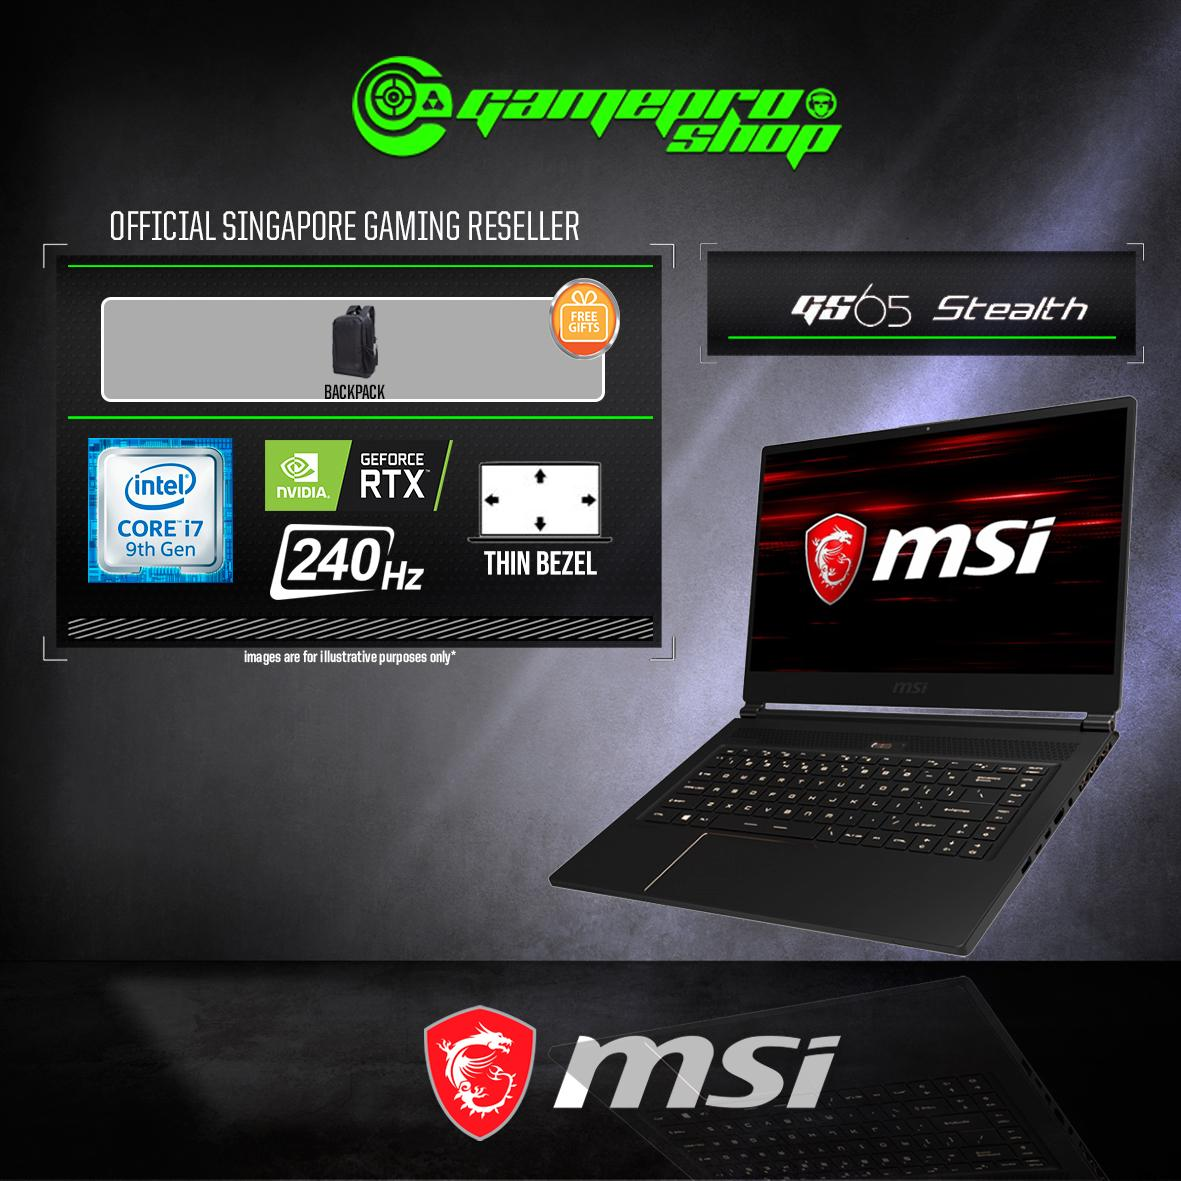 9th Gen MSI GS65 RTX2060 STEALTH 9SE - 680SG (i7-9750H / 16GB / 1TB SSD / WIN 10) 15.6 FHD with 240Hz GAMING LAPTOP *GSS PROMO*